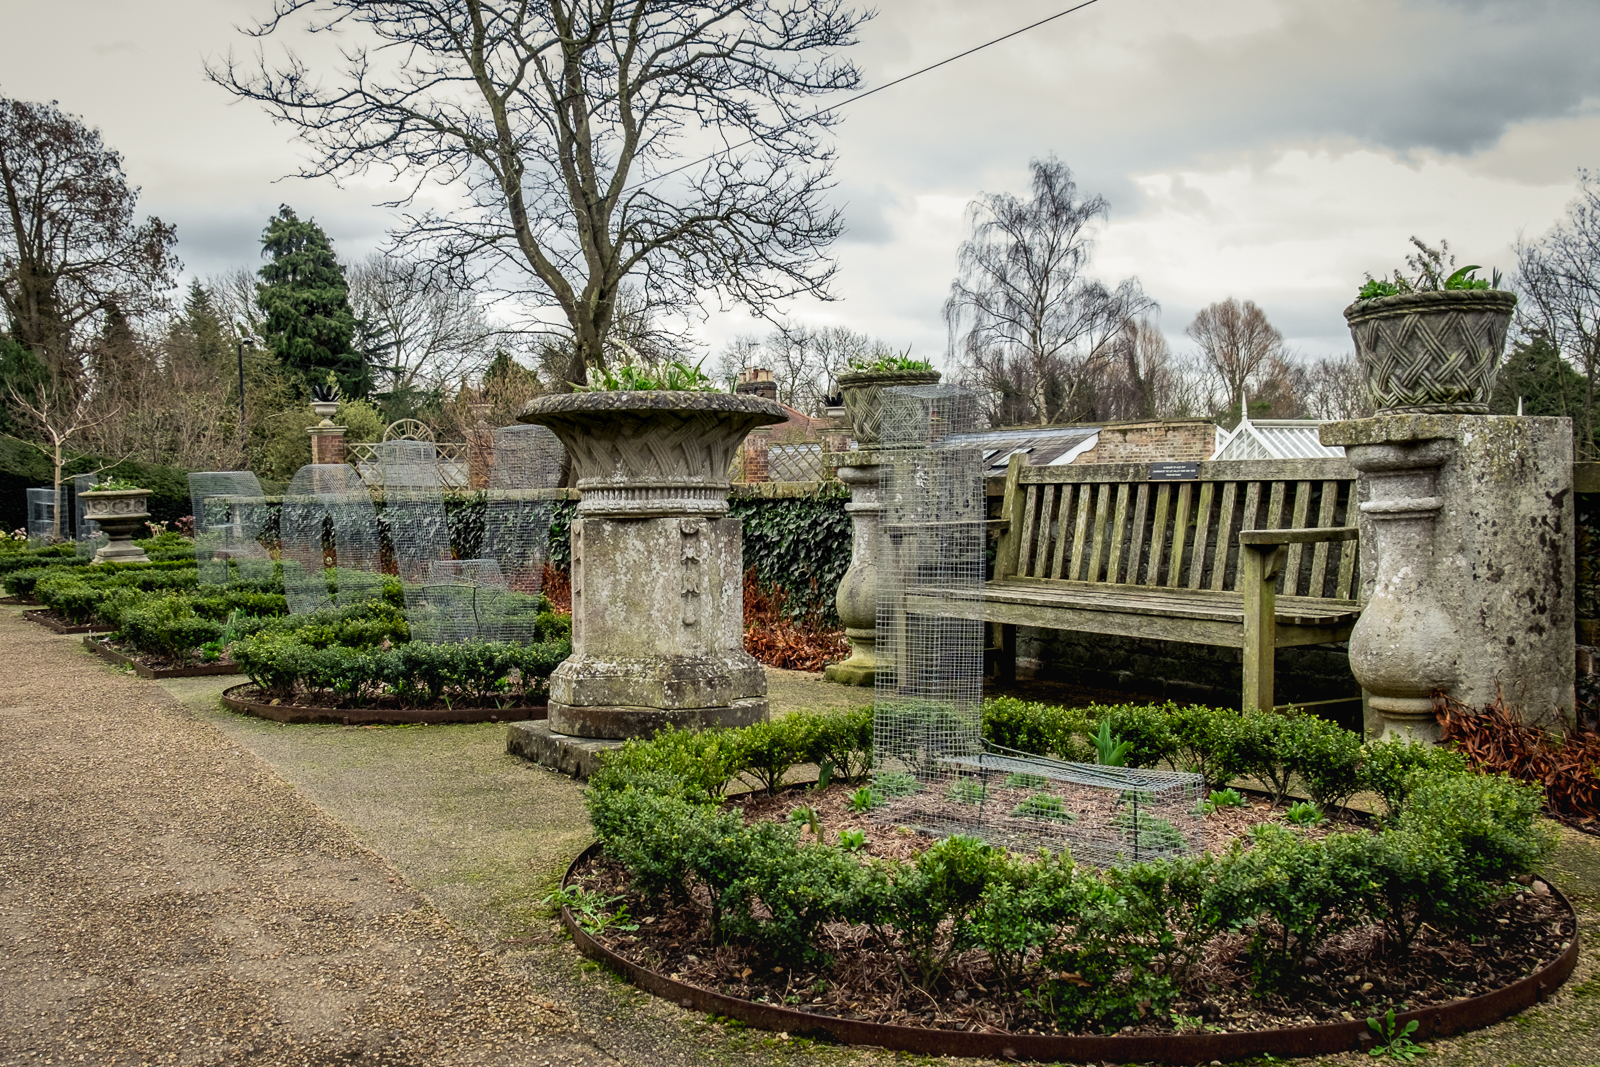 20170301_Enfield_Myddelton-House-Gardens_Letters